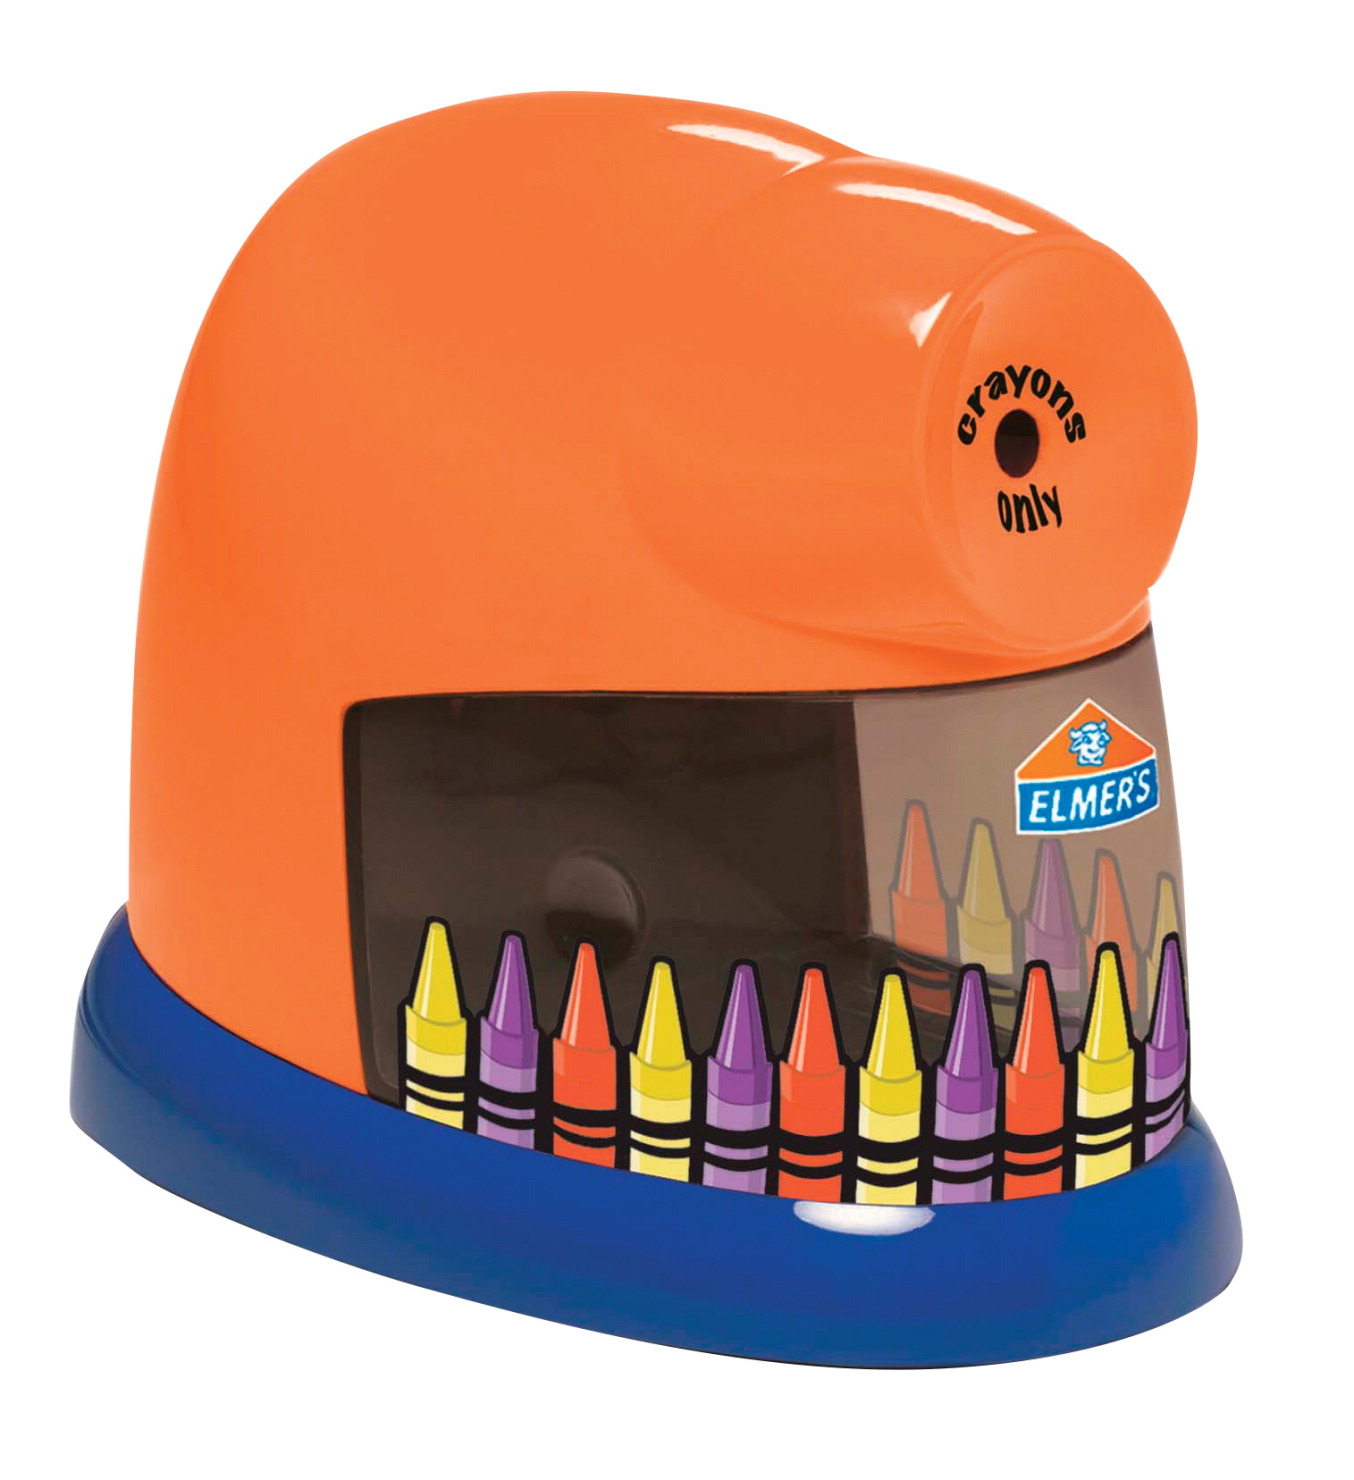 Elmer's X-ACTO CrayonPro Electric Crayon Sharpener with Cleaning Brush